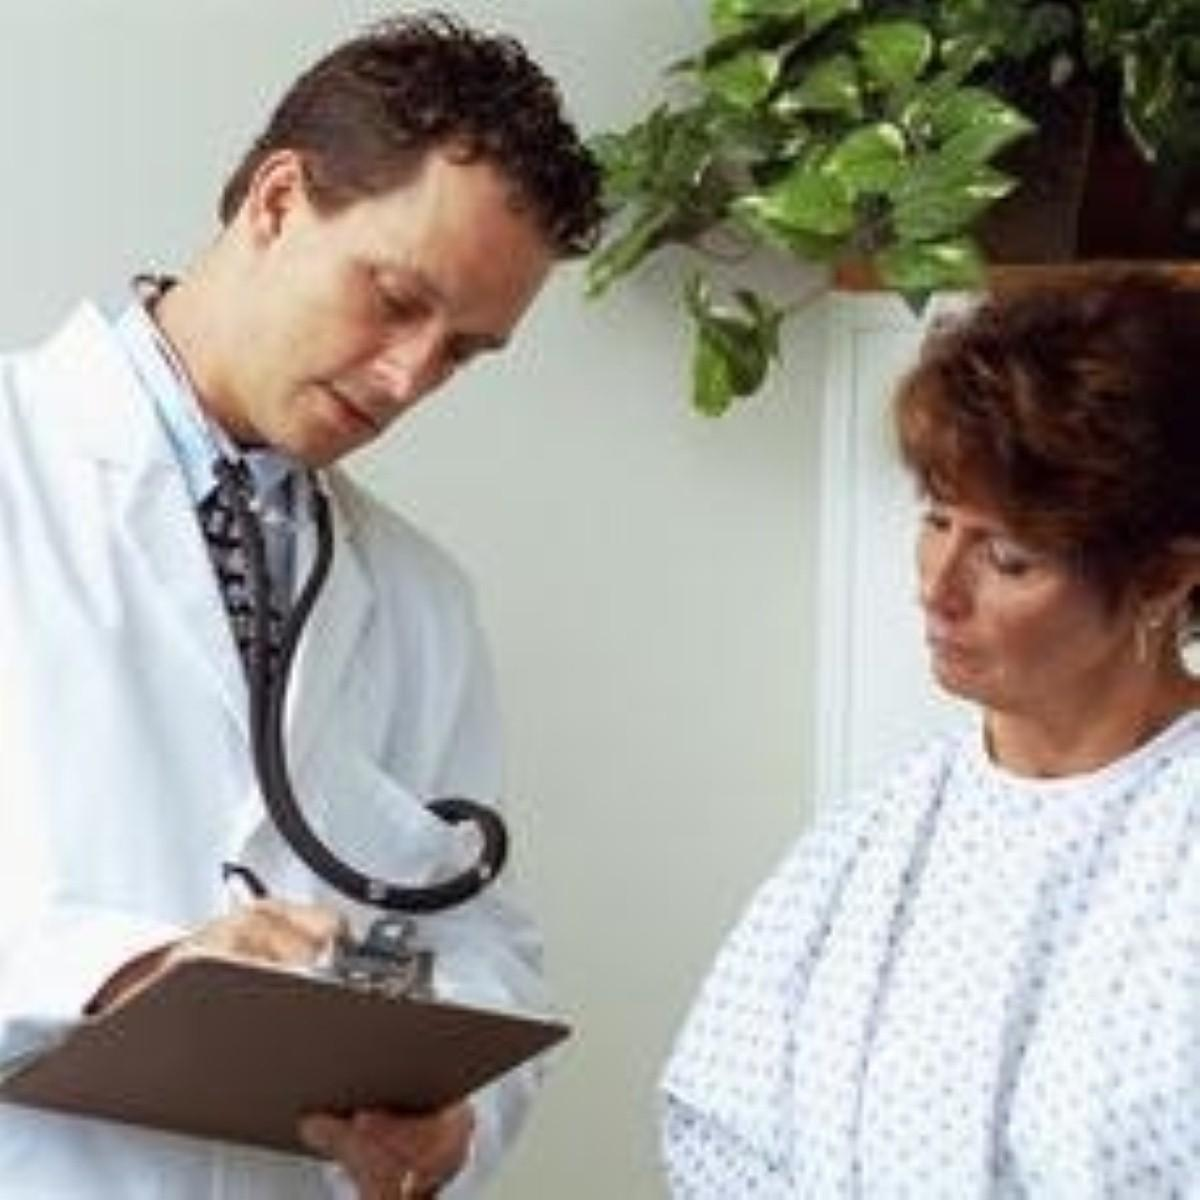 Cardiovascular risk 'linked to cognitive decline'